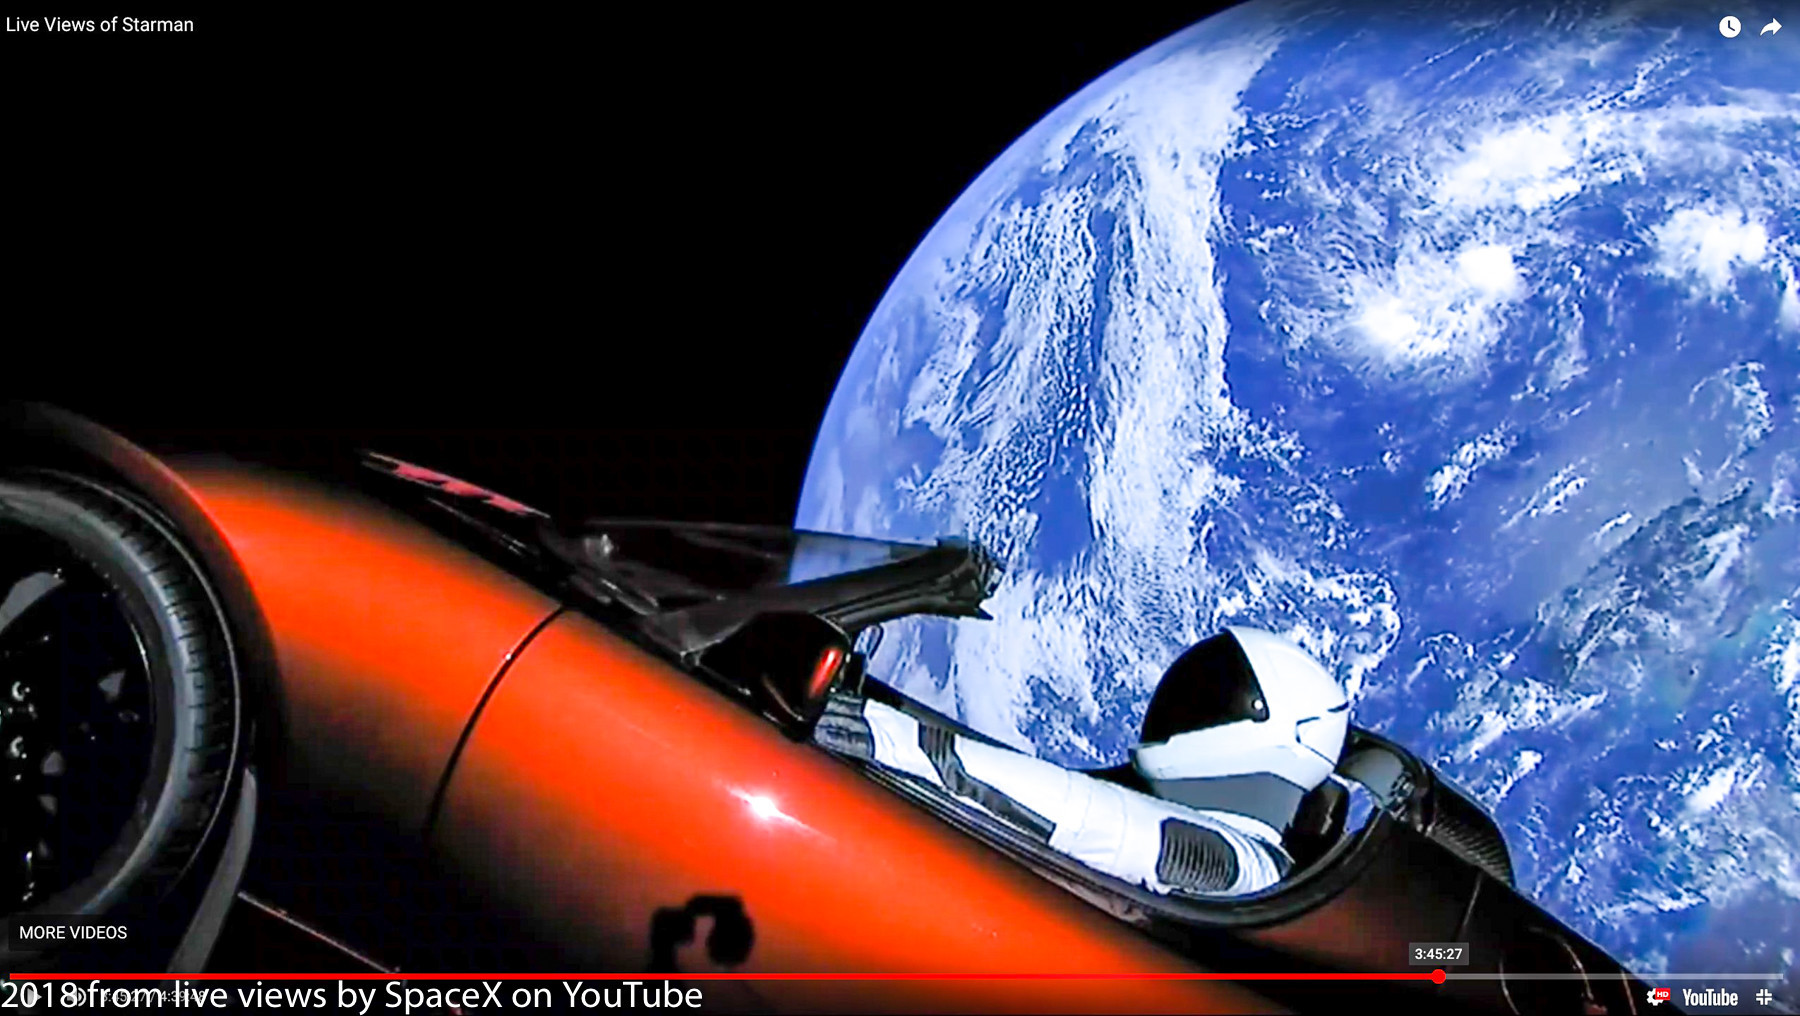 01619-20180206 SpaceX Falcon Heavy test launch incl Spaceman & Elon Musk Tesla Roadster-photos from live views by SpaceX on YouTube